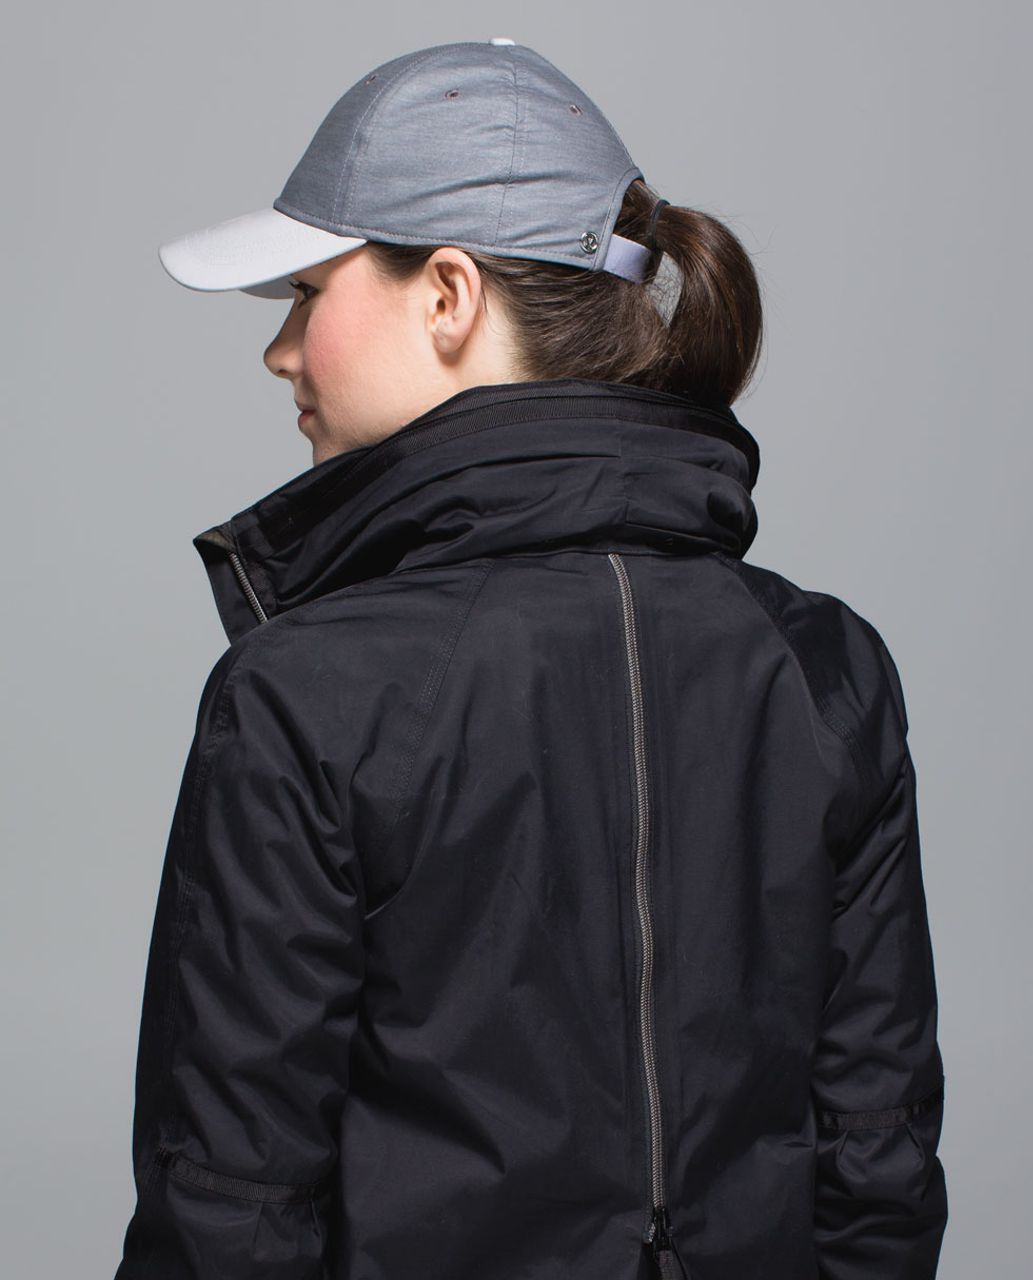 Lululemon Baller Hat - Heathered Slate / Silver Spoon